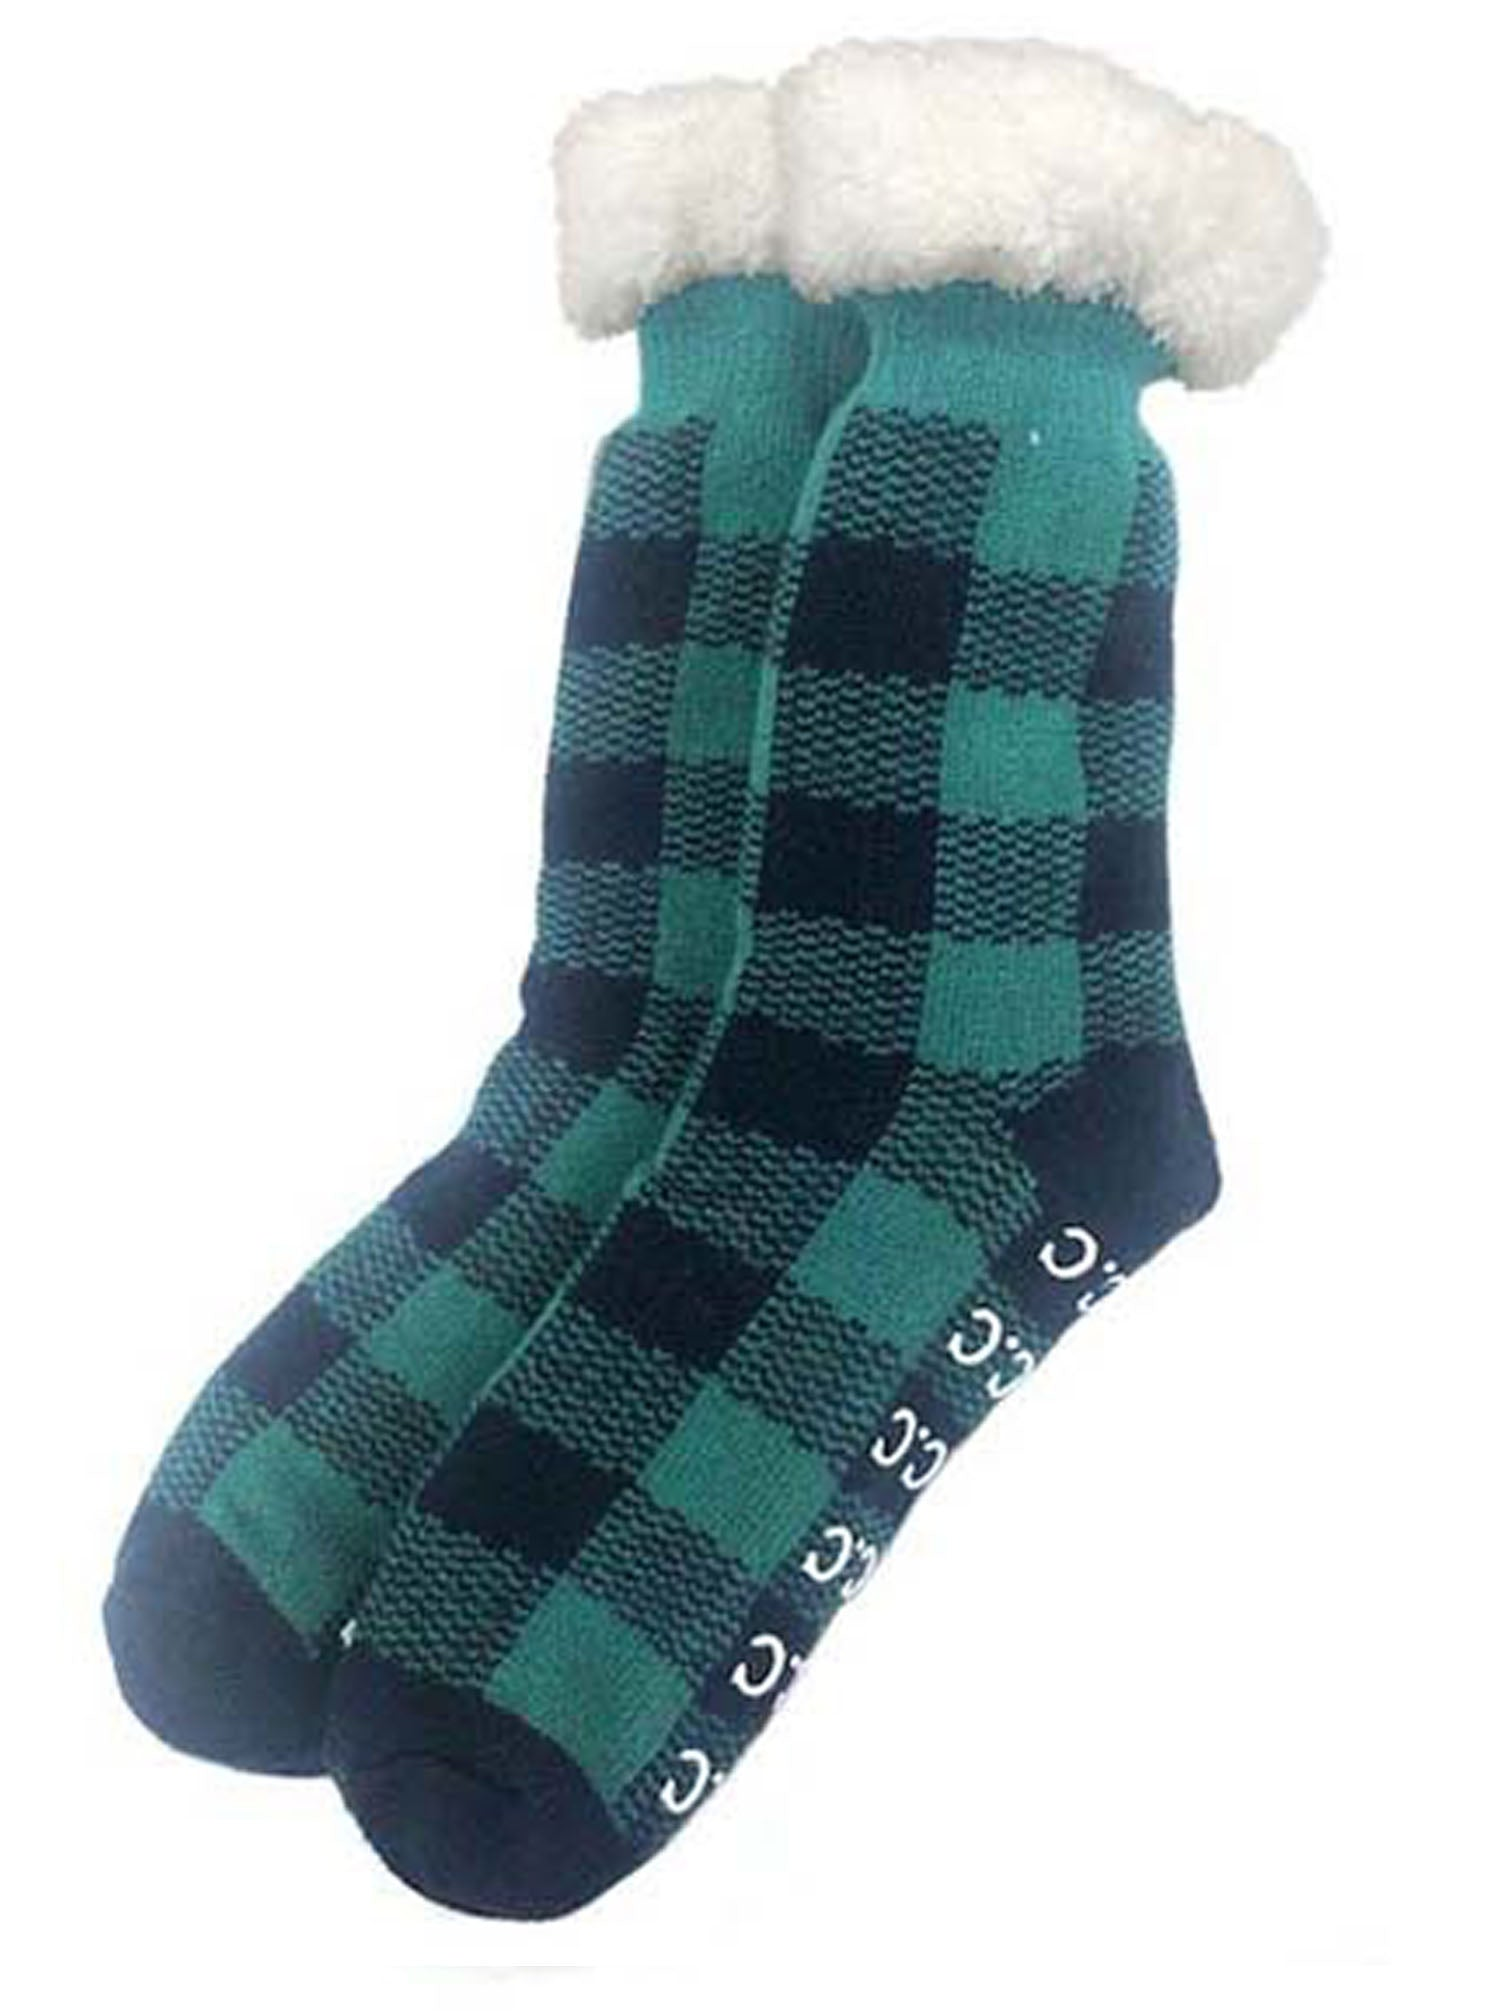 SL-25 C.C Sherpa Socks Buffalo Plaid Navy/Green